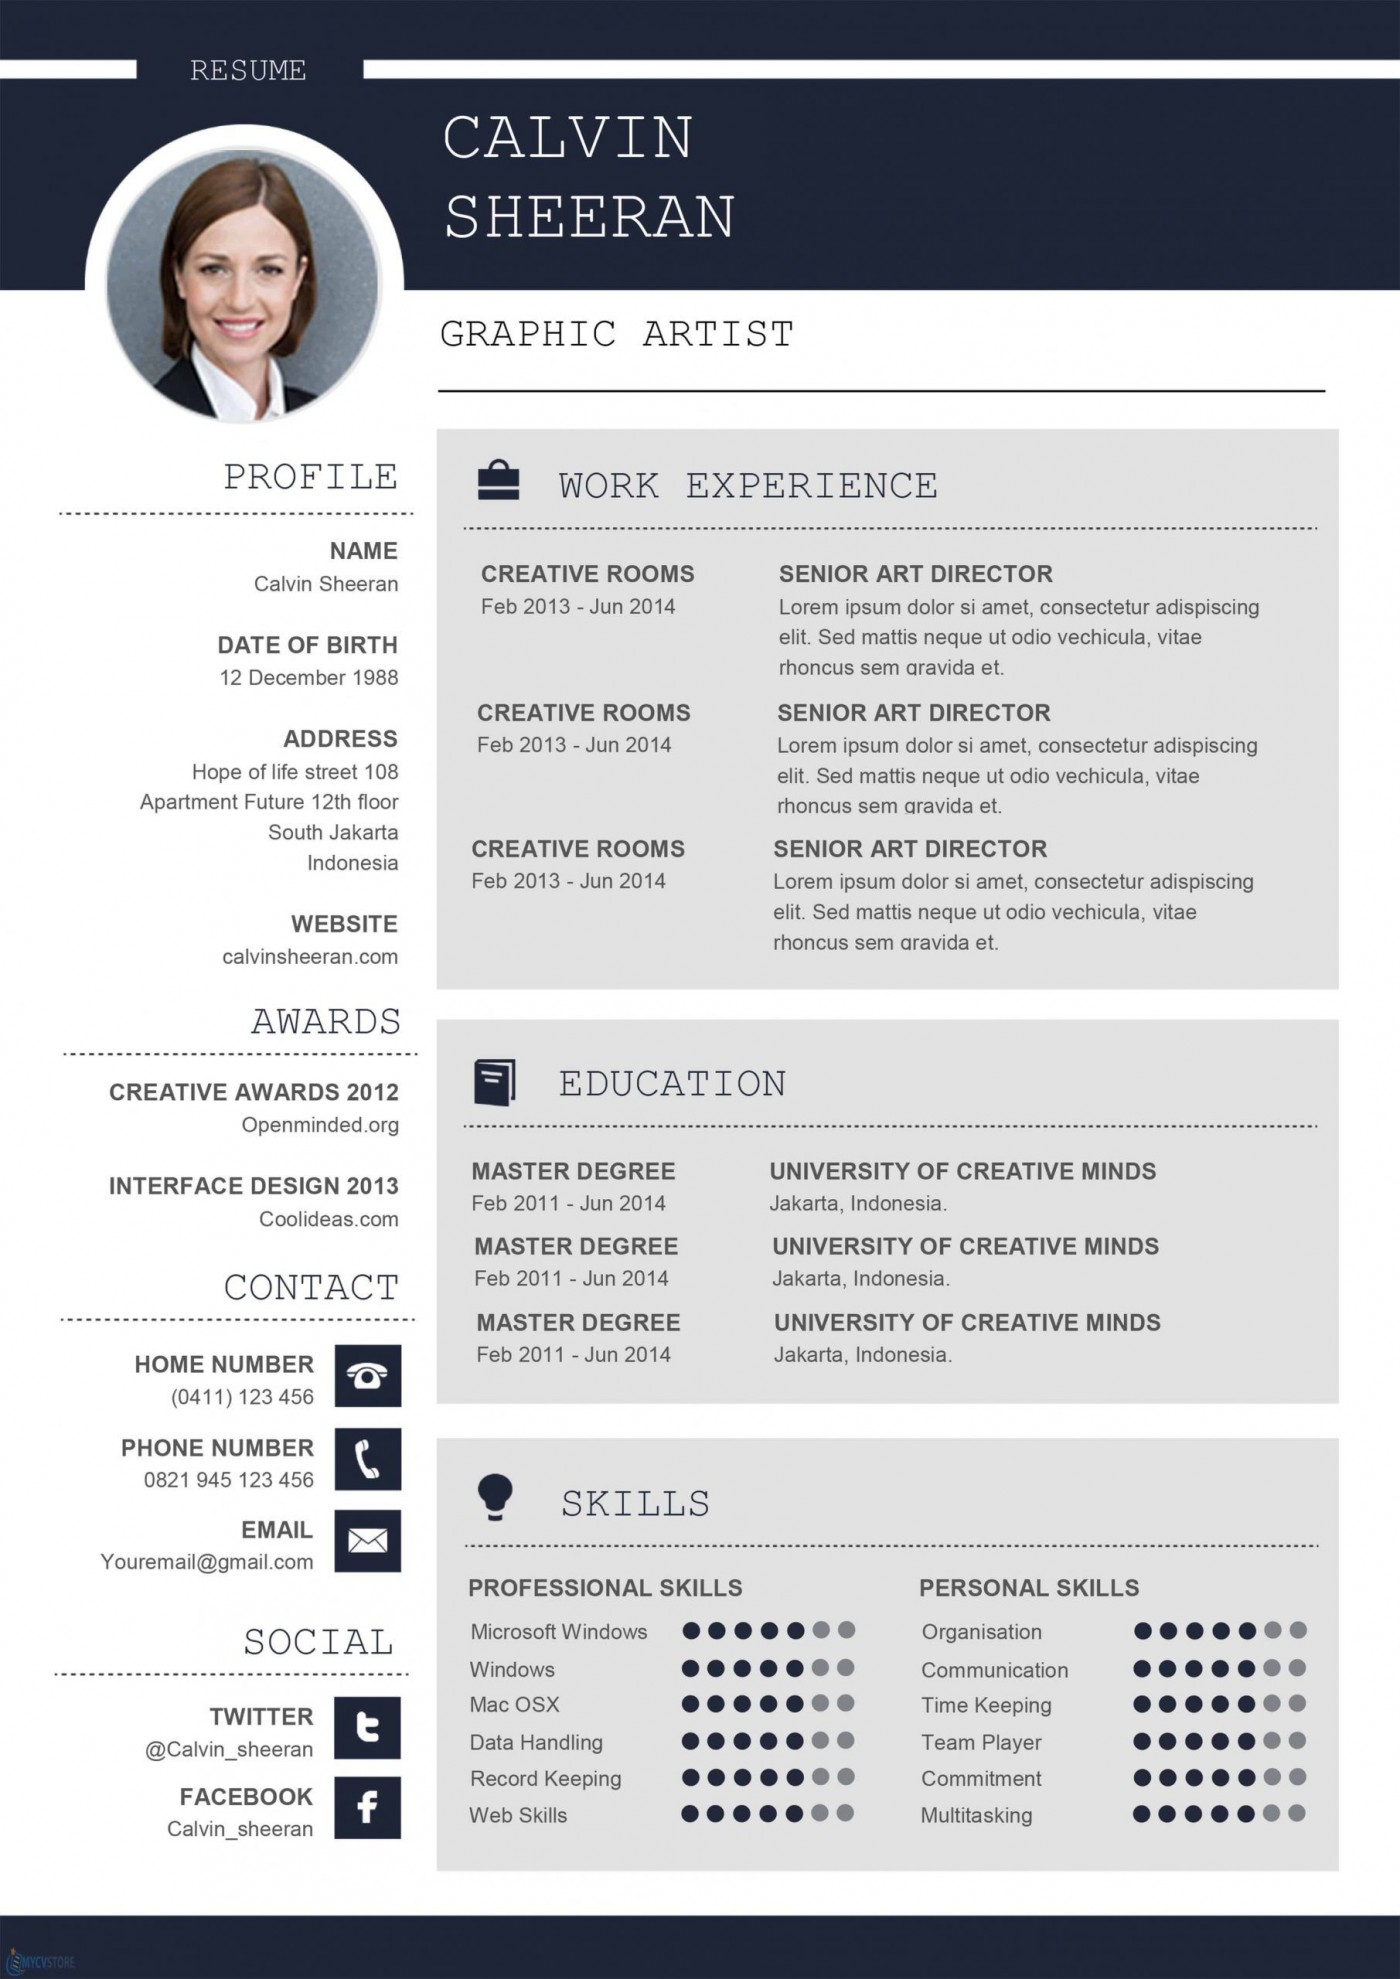 002 Incredible Resume Microsoft Word Template Picture  Cv/resume Design Tutorial With Federal Download1400